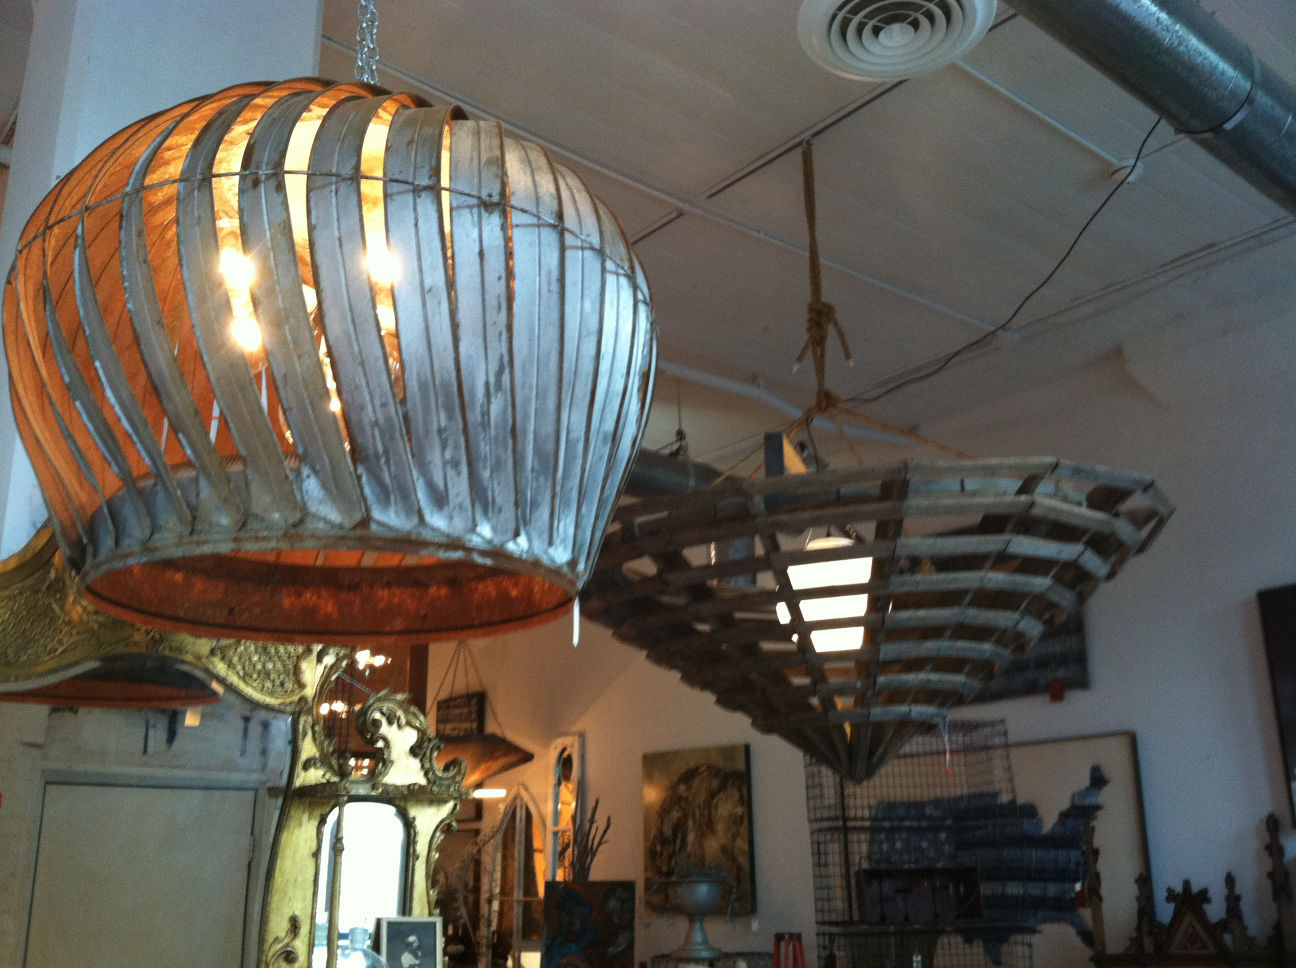 Fall Homes-Upcycled Lighting & Upcycling: Discarded objects reborn as light fixtures | South ... azcodes.com